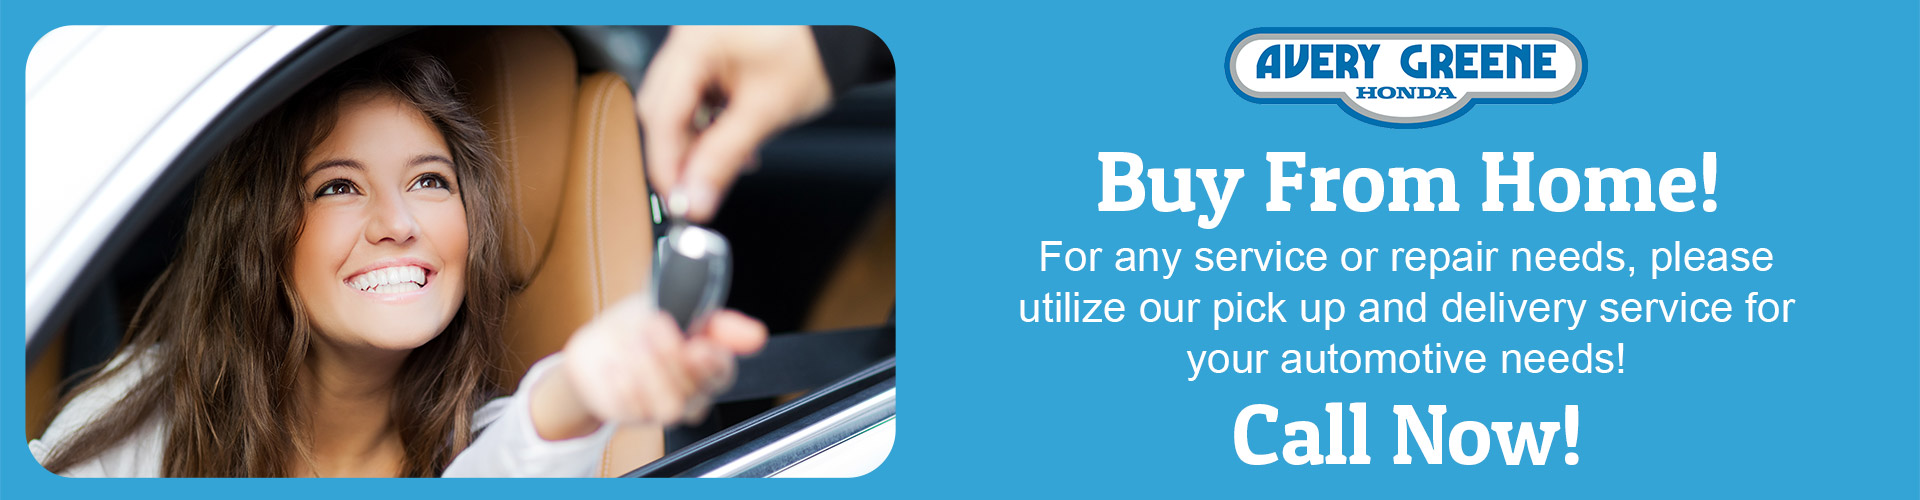 Avery Greene Honda Now Offering Buy From Home Option